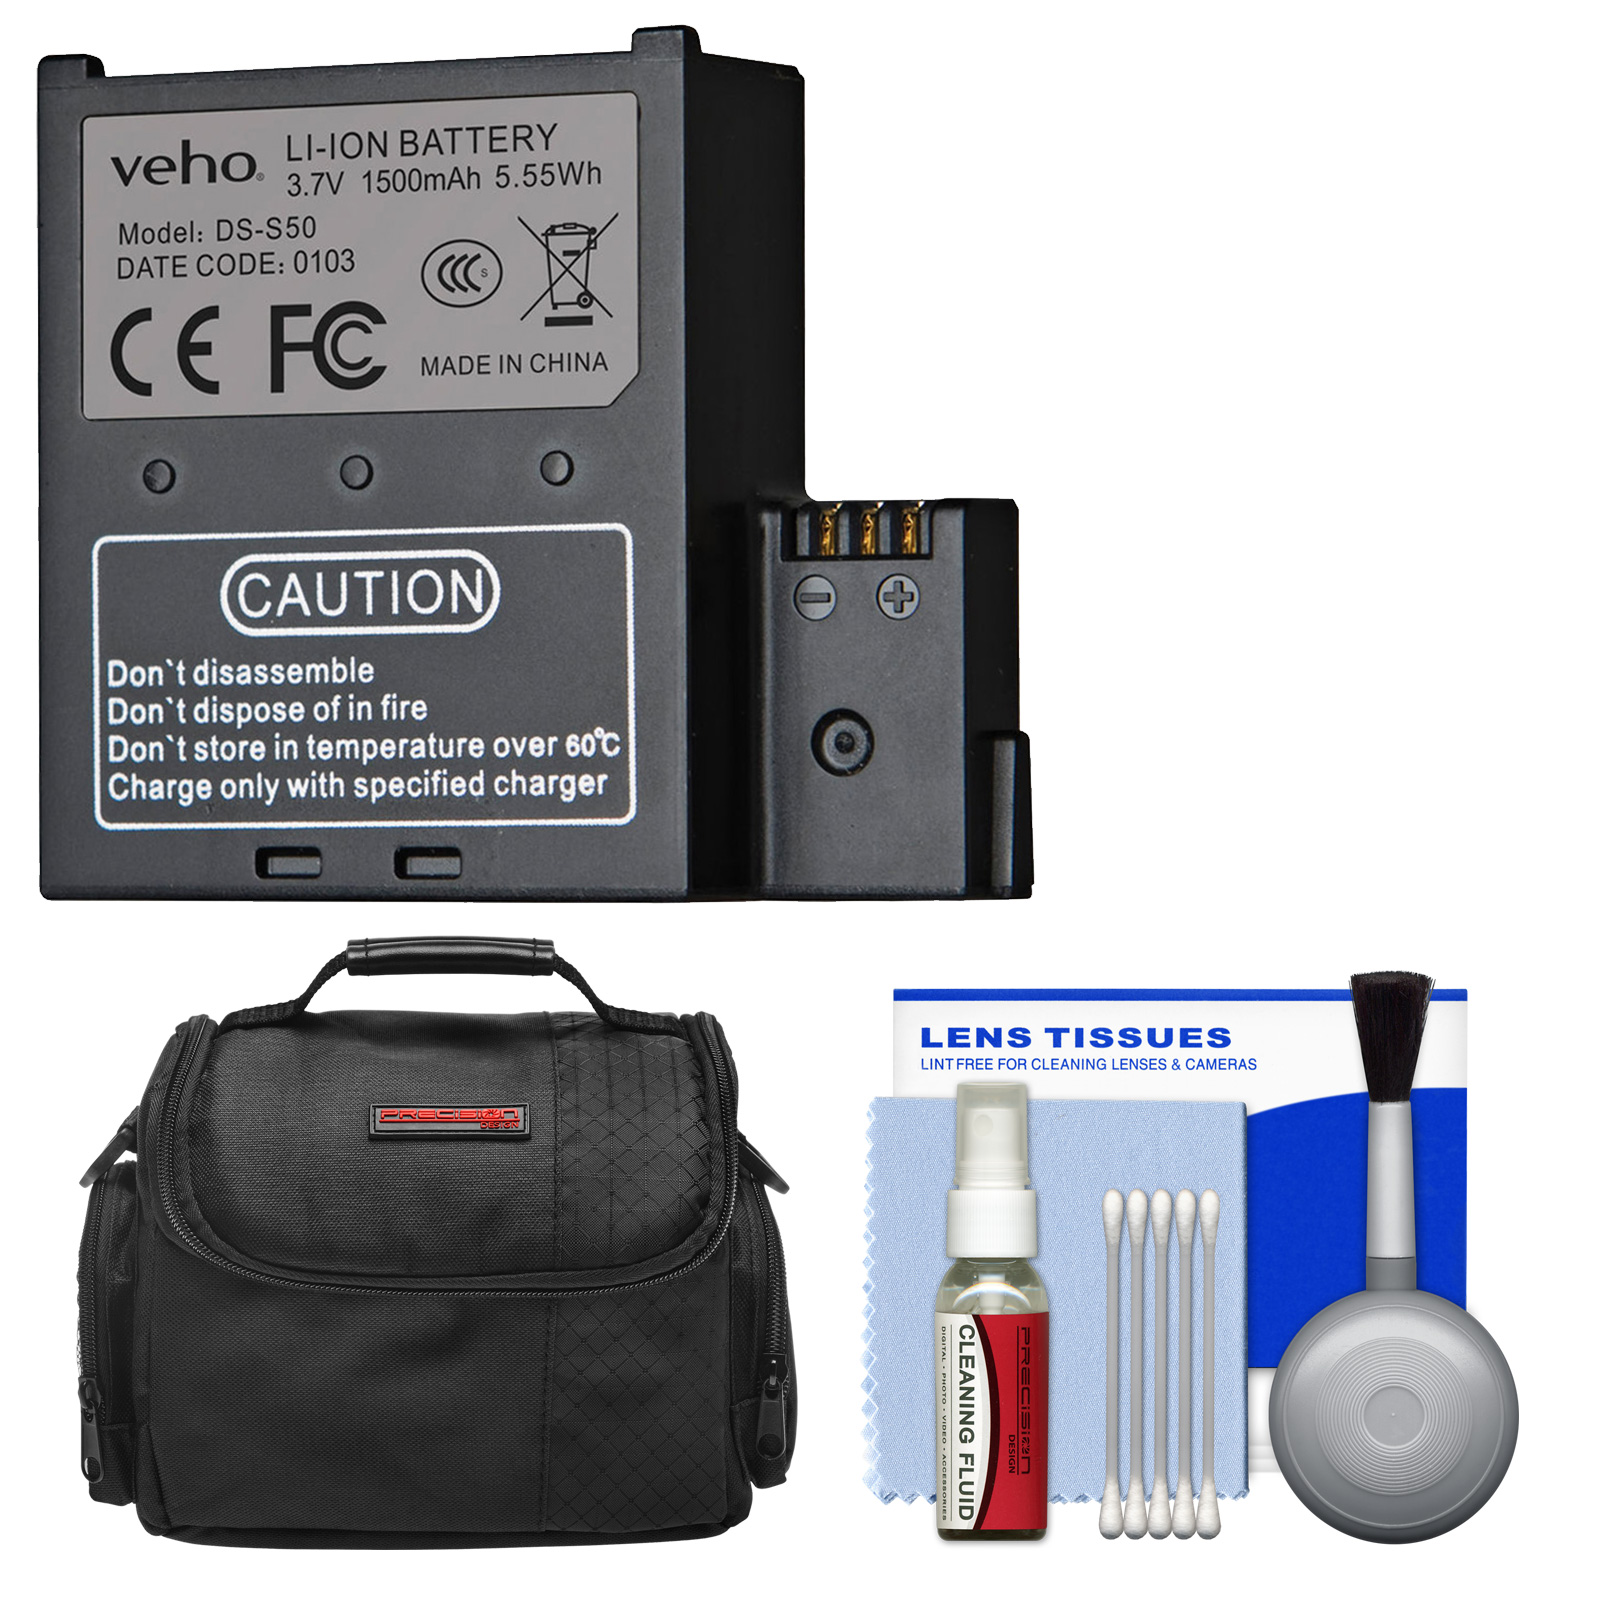 Veho VCC-A034-SB 1500mah Rechargeable Battery for Muvi K, K1, K2 Action Cameras with Case + Cleaning Kit